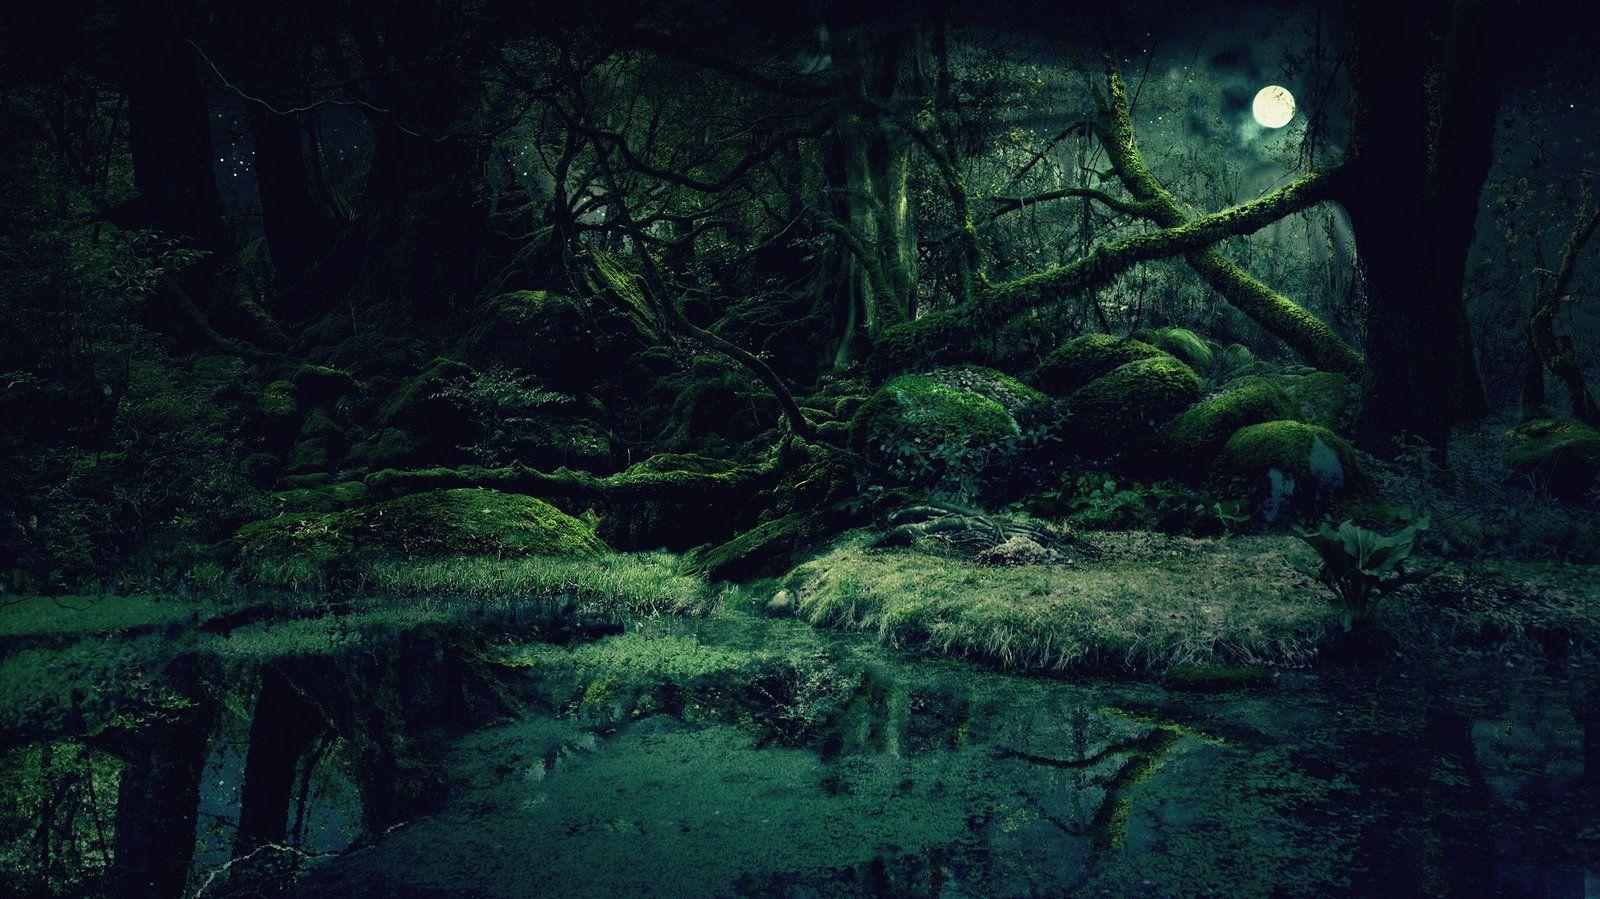 Forest Background Images - Wallpaper Cave